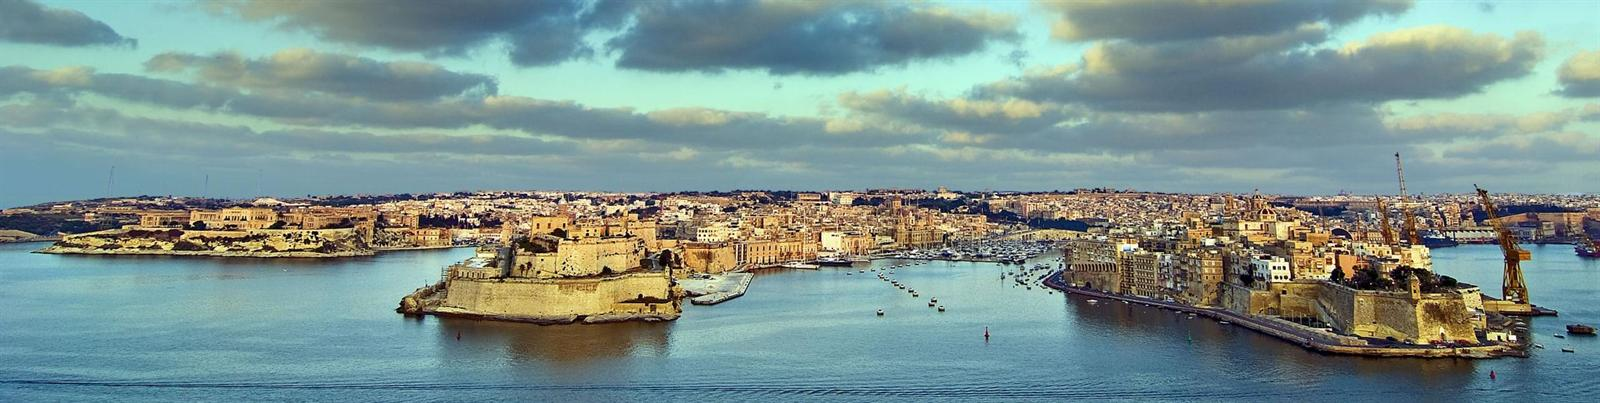 The Great Harbour of Valetta